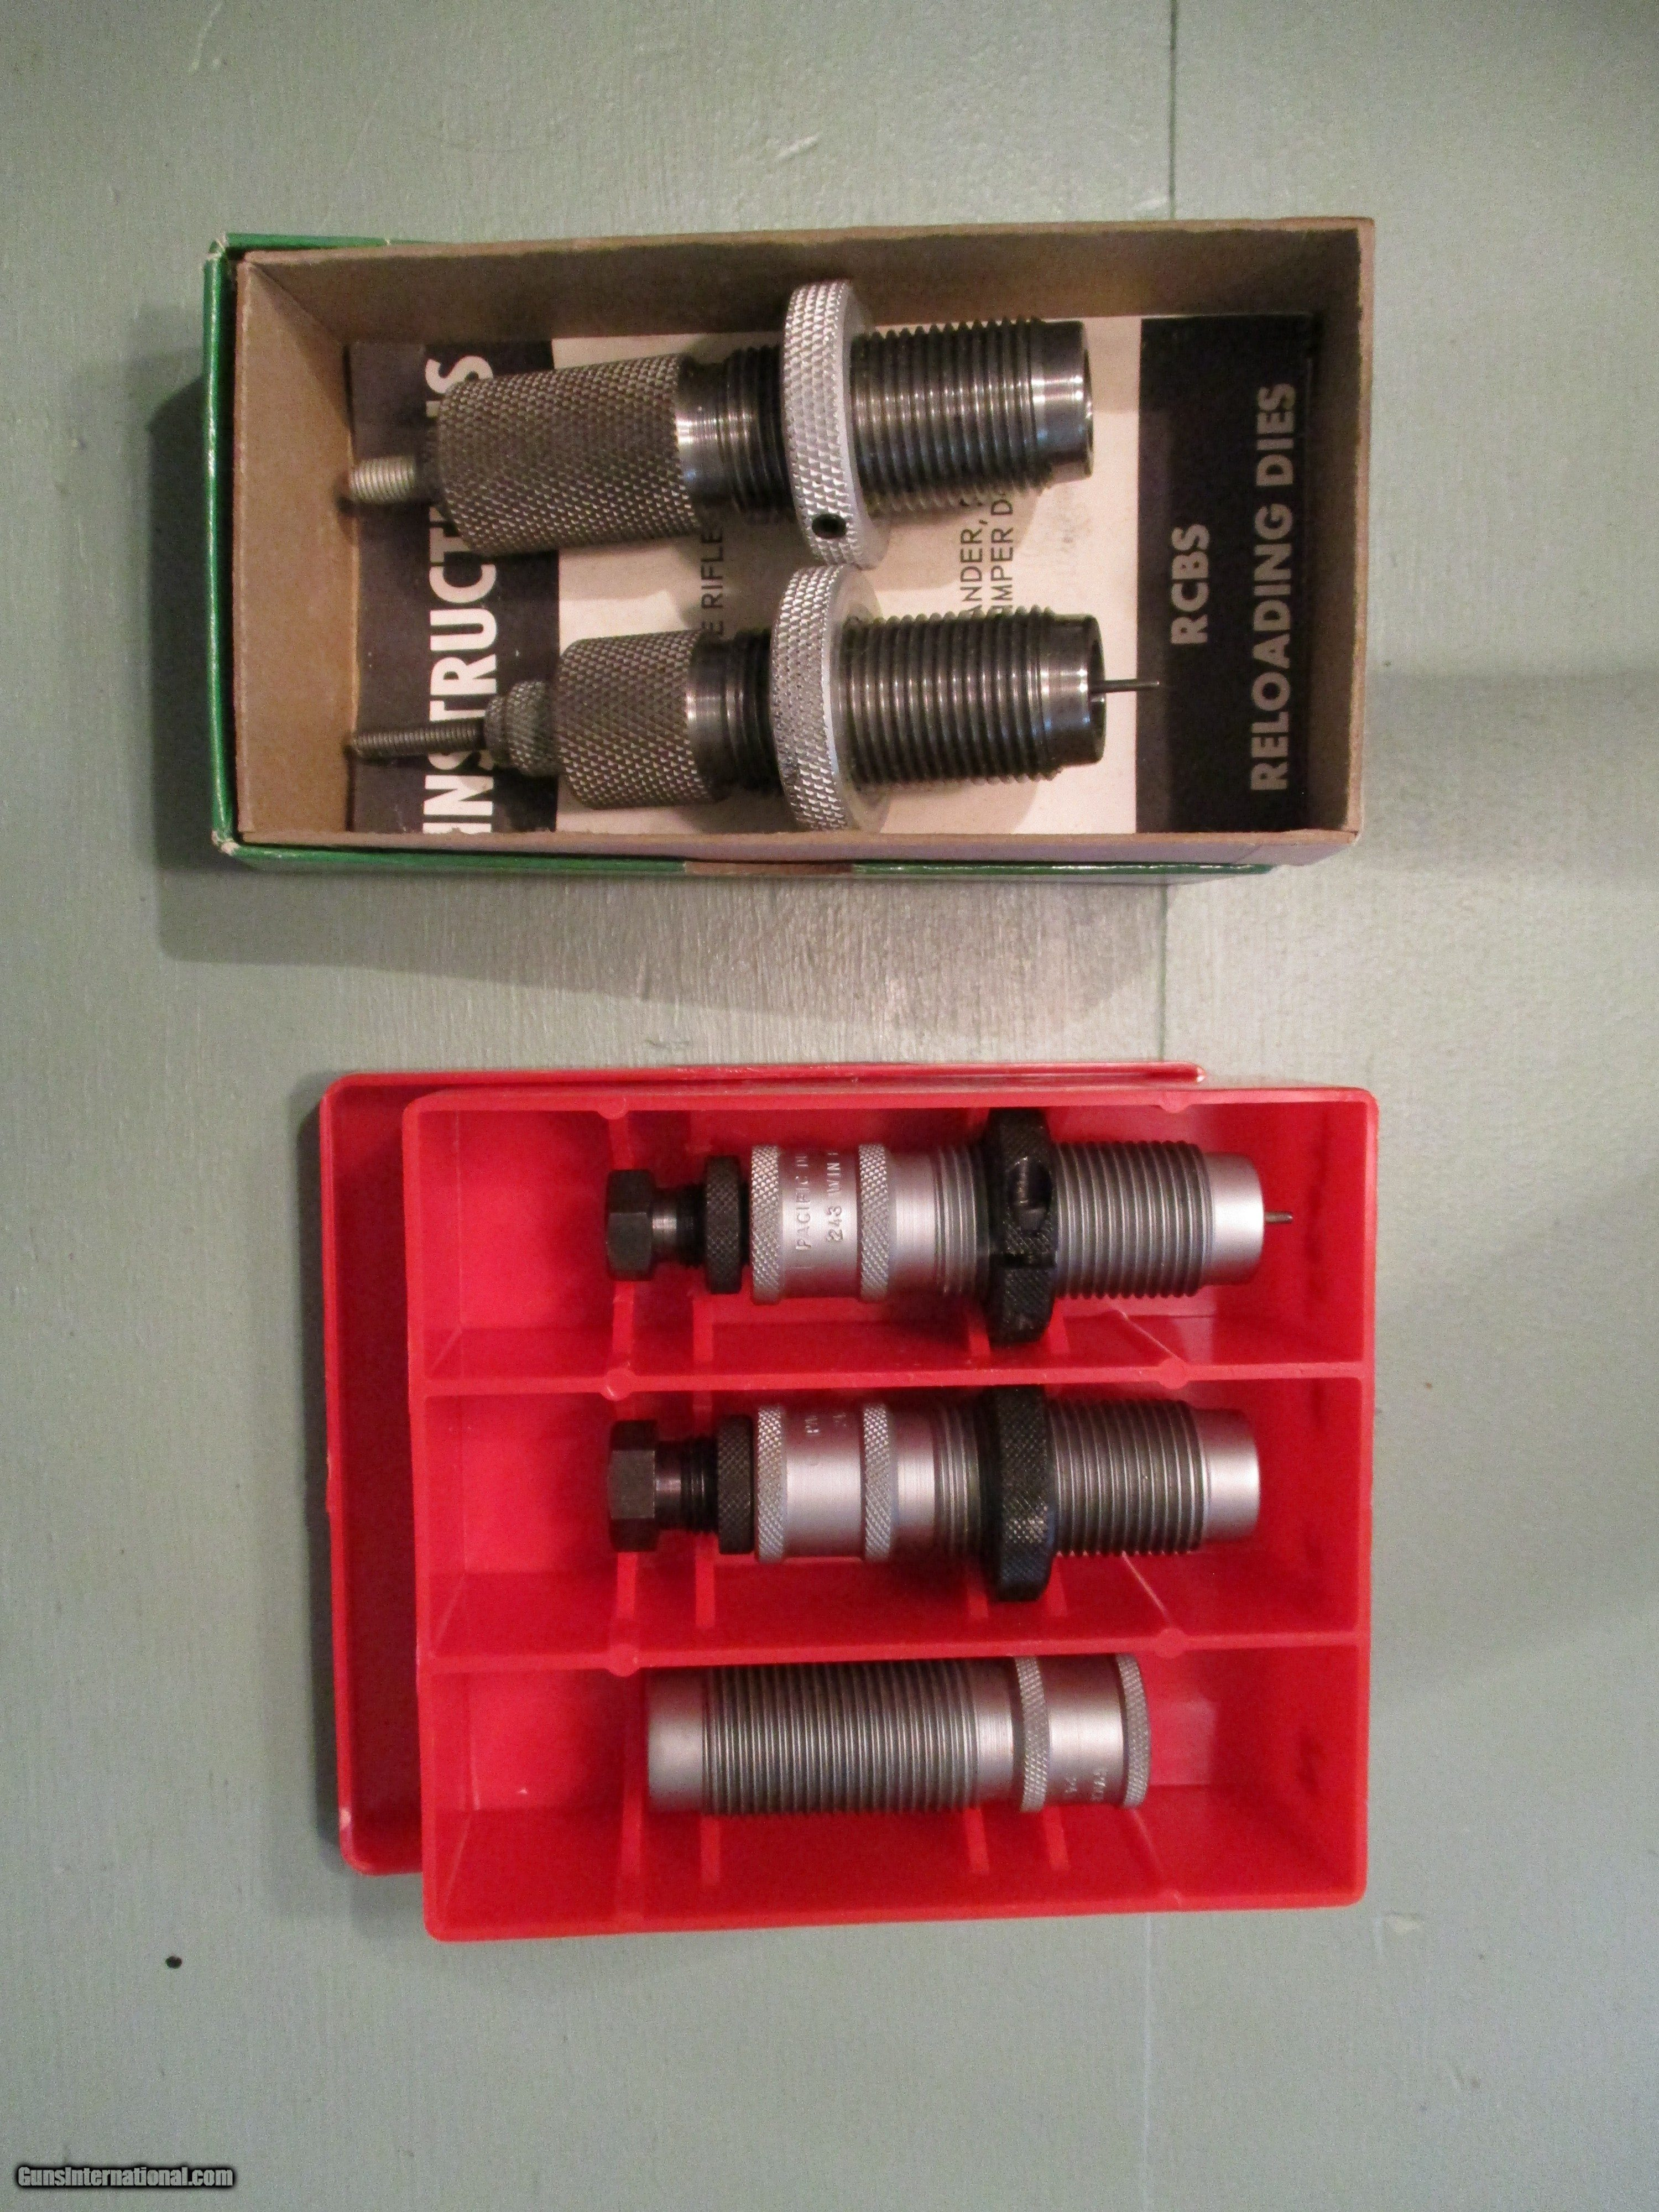 243 RELOADING DIES (TWO SETS)